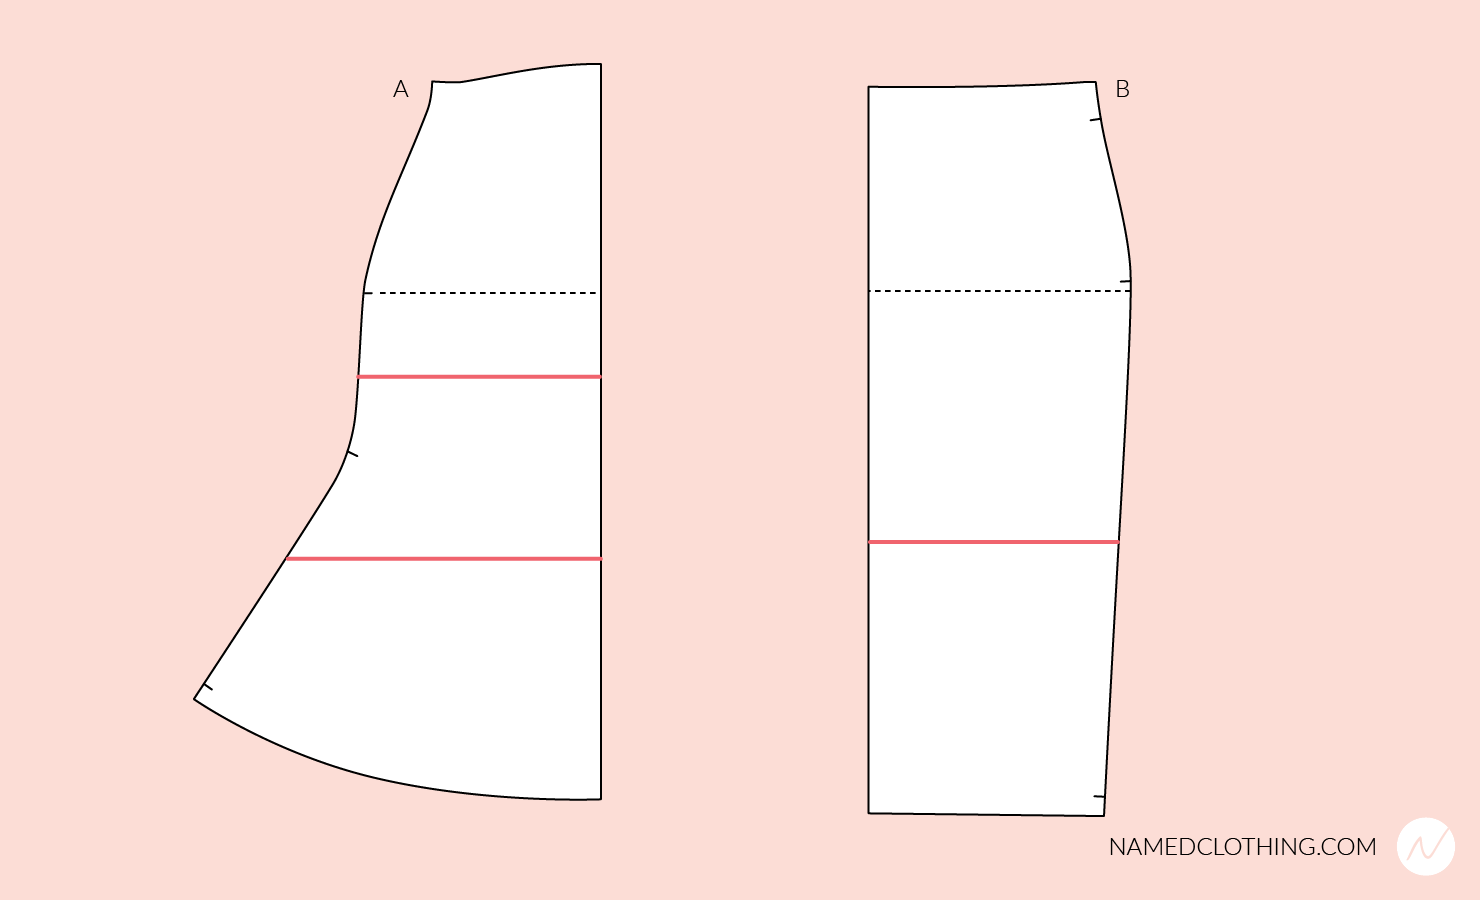 Altering the side length of the pattern